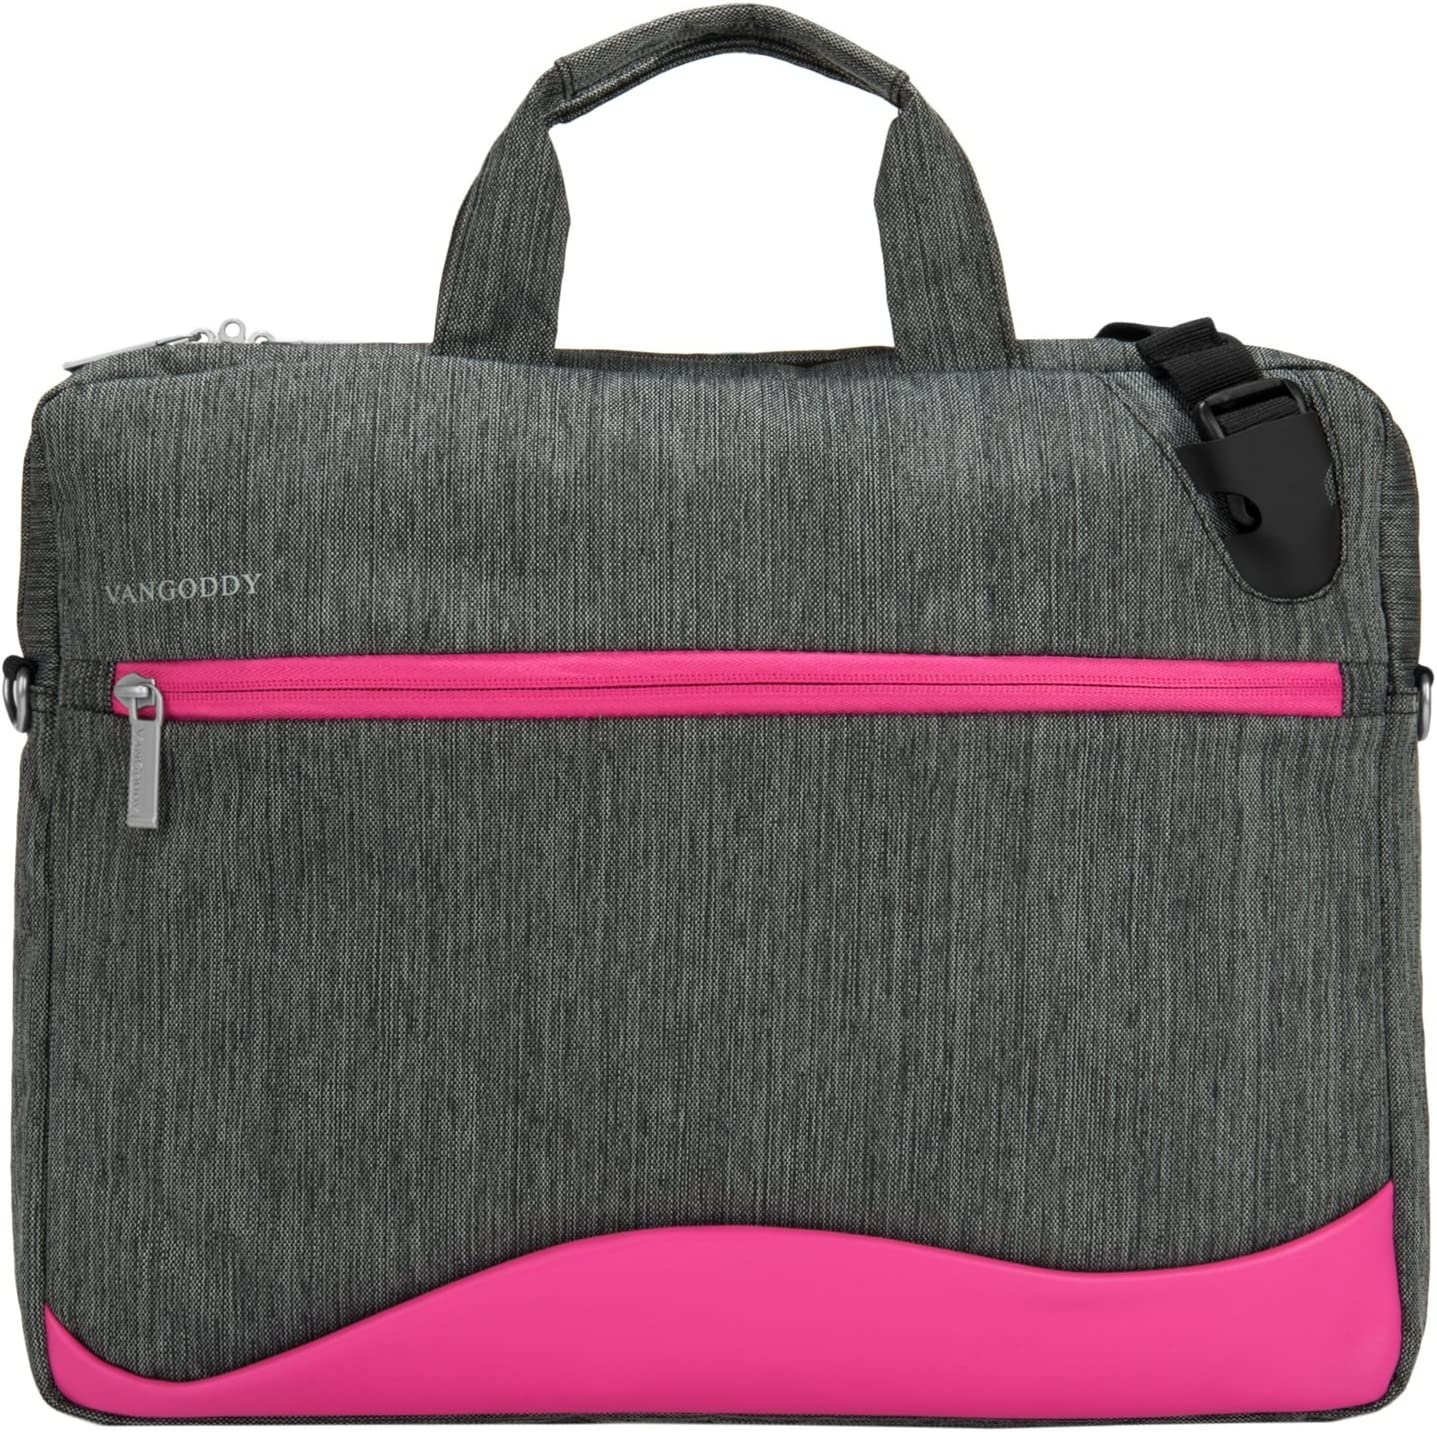 13 14 15 Laptop Carrying Case for HP Elite Dragonfly, Lenovo ThinkPad X1 Carbon